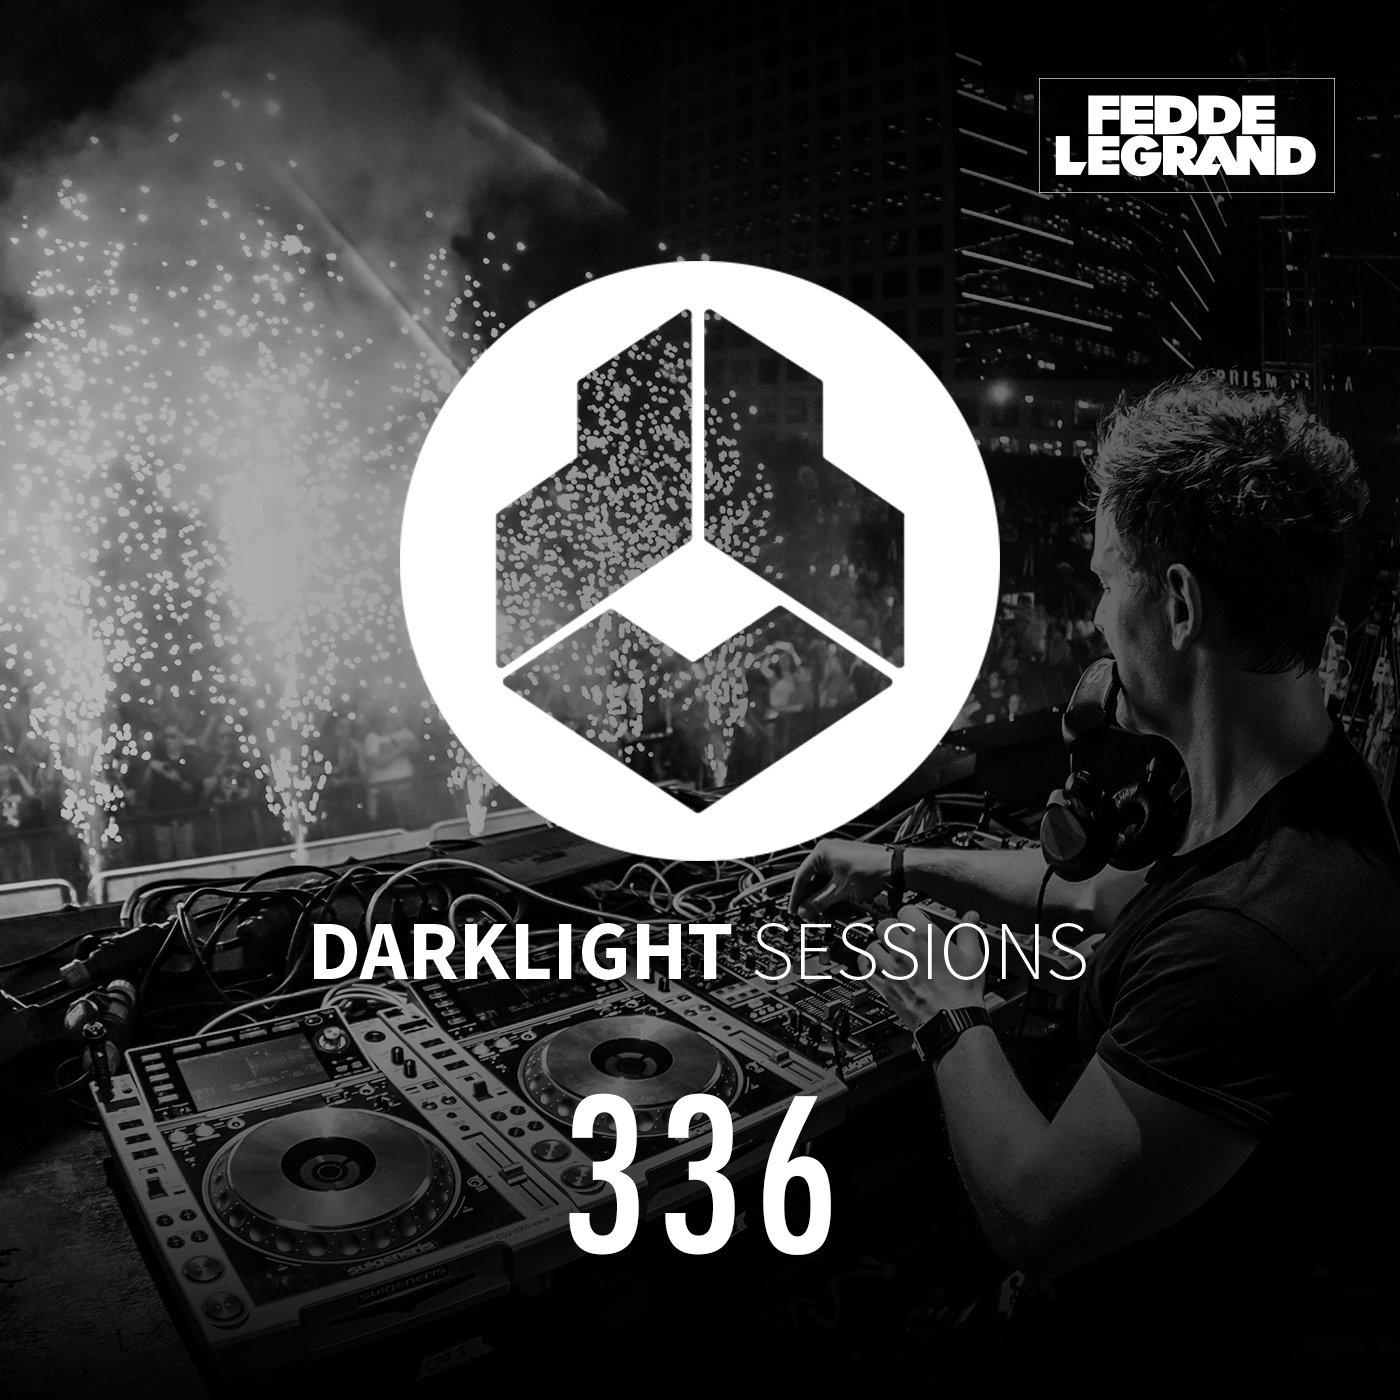 Darklight Sessions 336